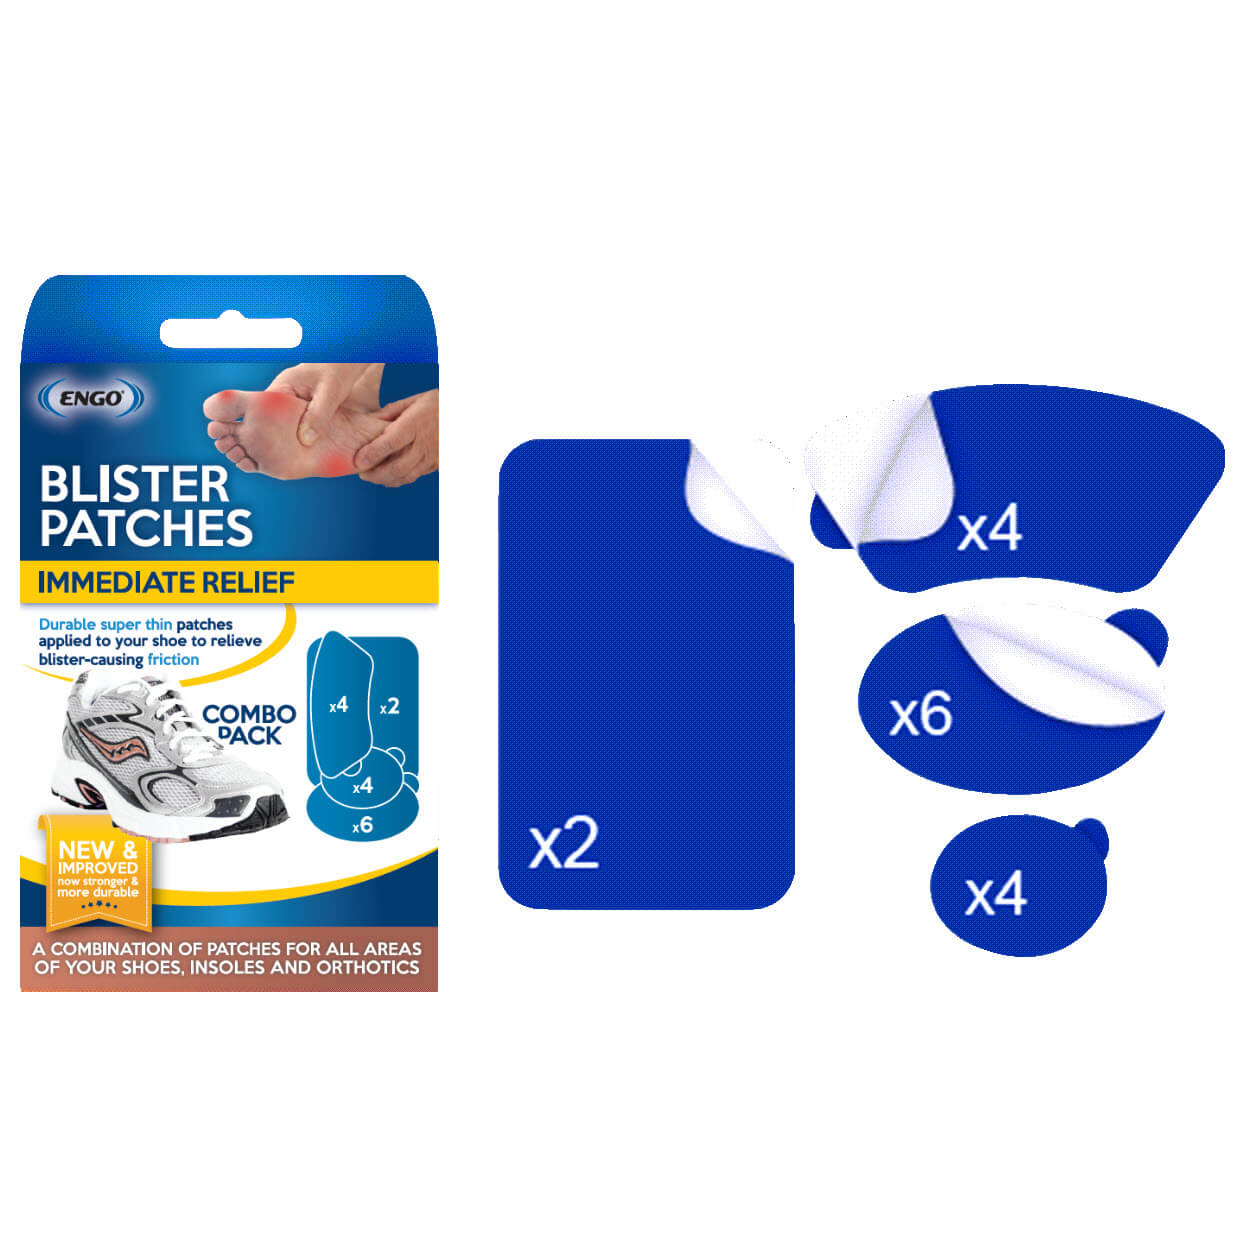 ENGO Blister Patches Combo Pack